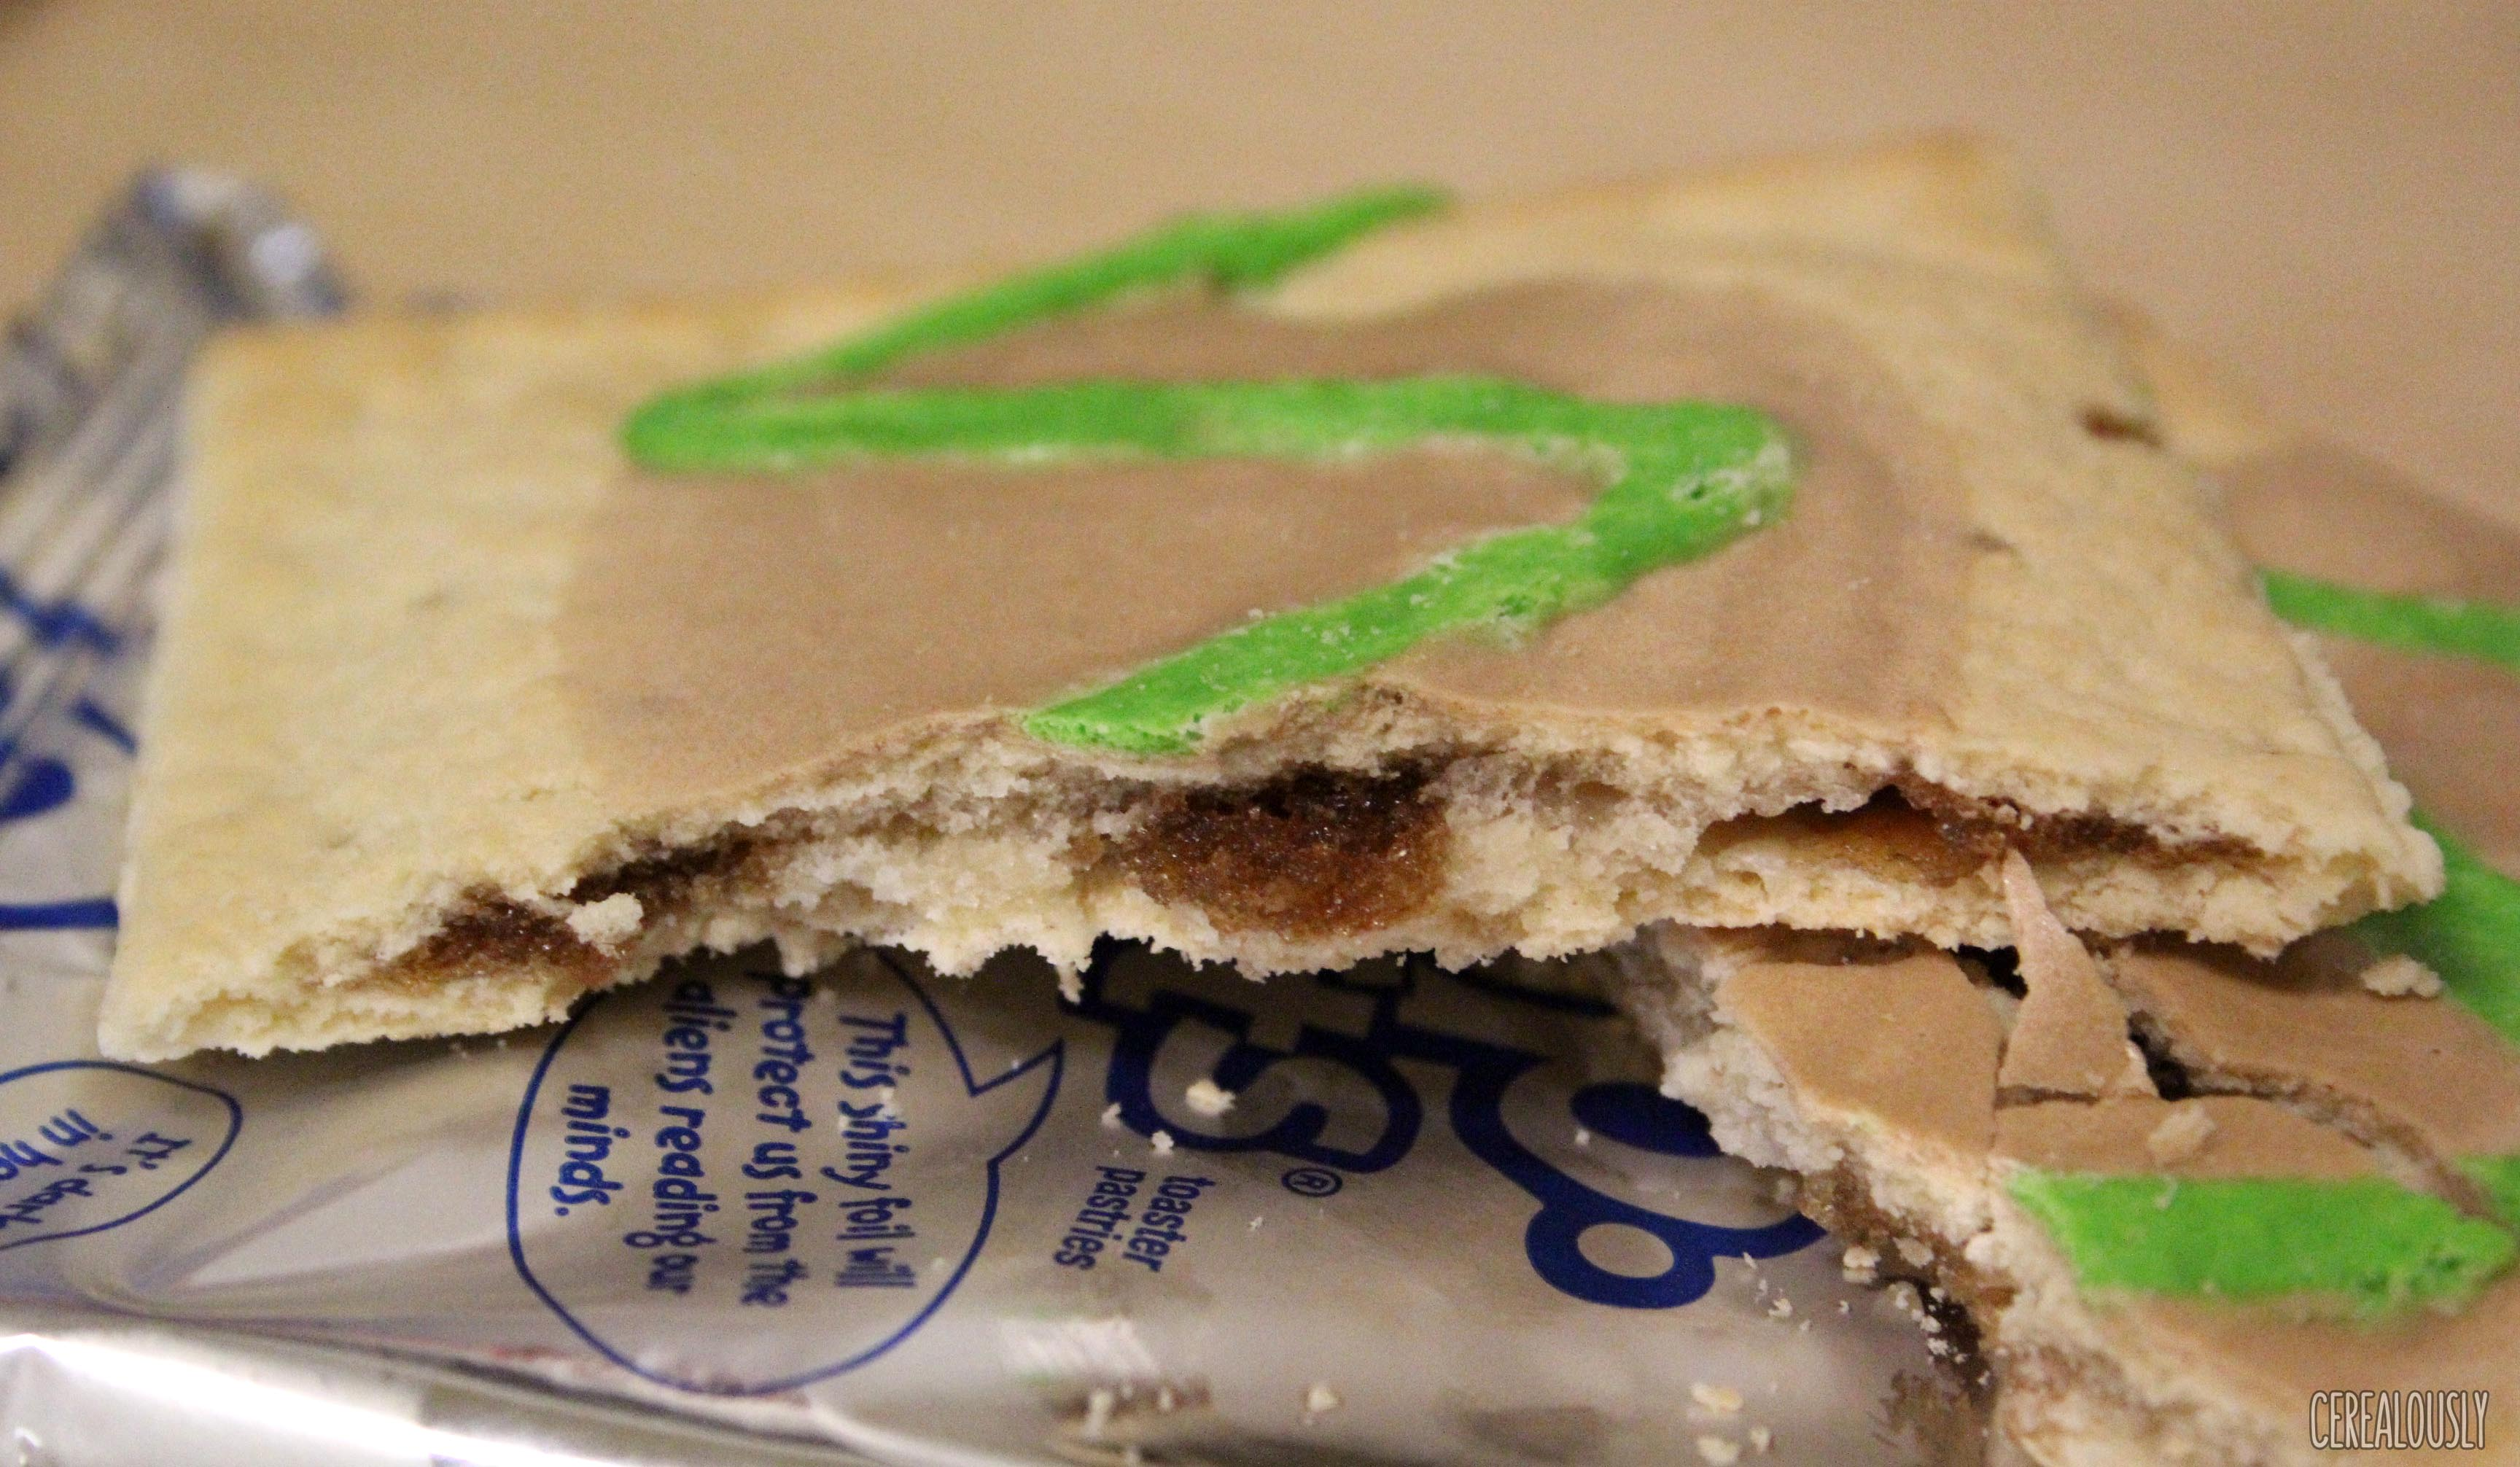 Review: Kellogg's Limited Edition Frosted Caramel Apple Pop-Tarts